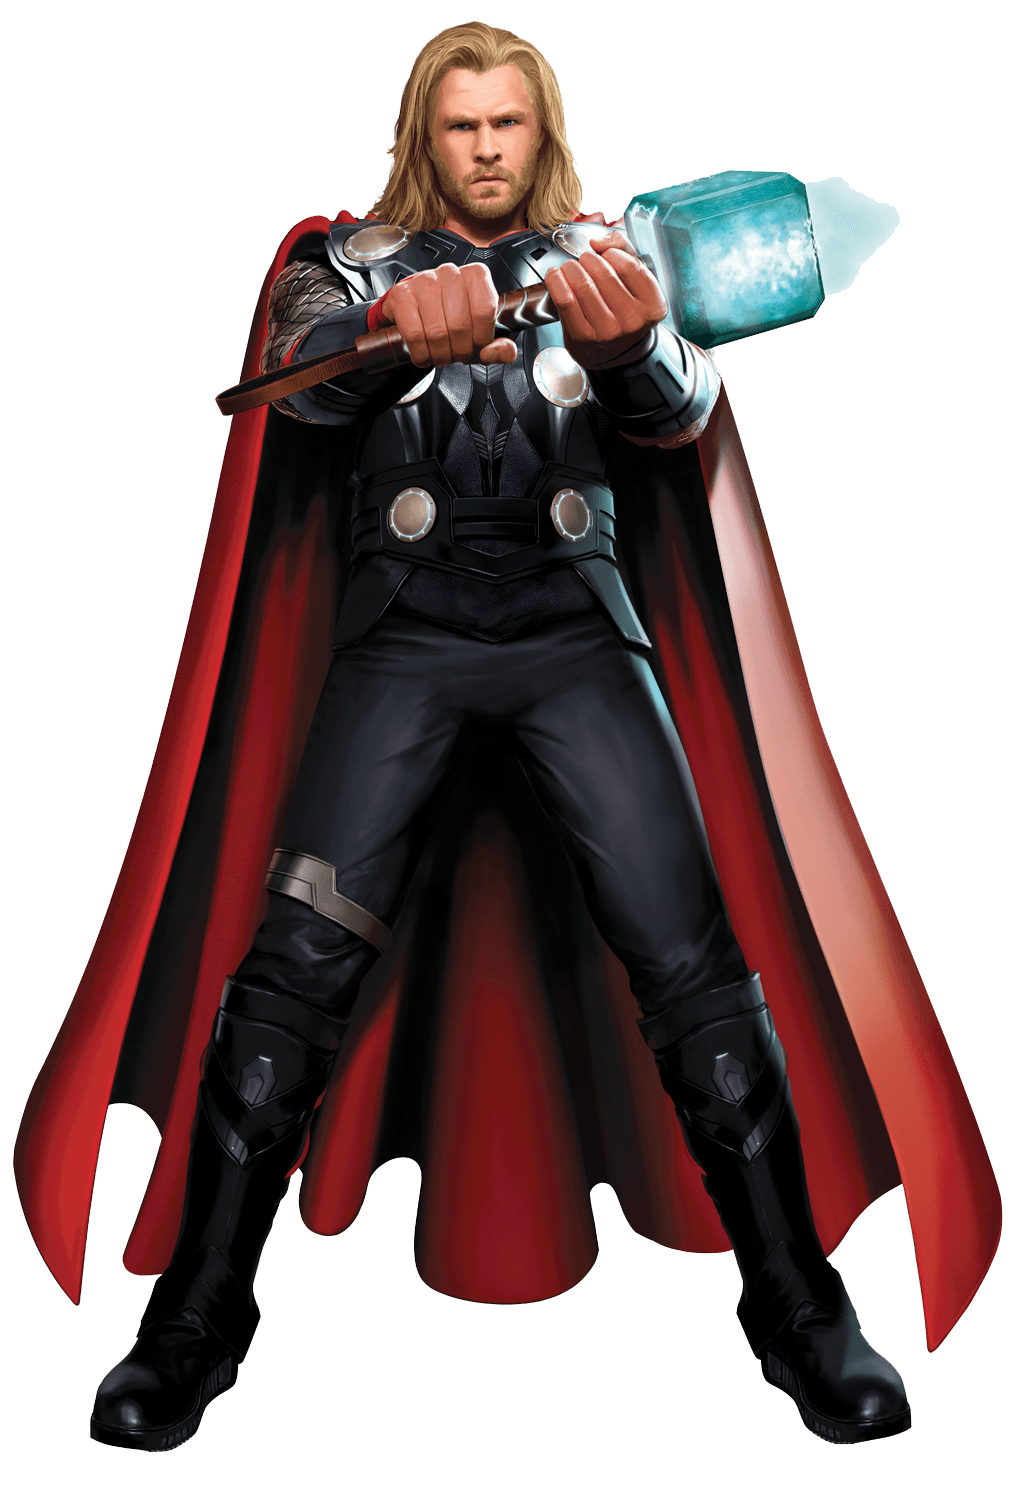 Thor clipart png. Fighting transparent stickpng standing